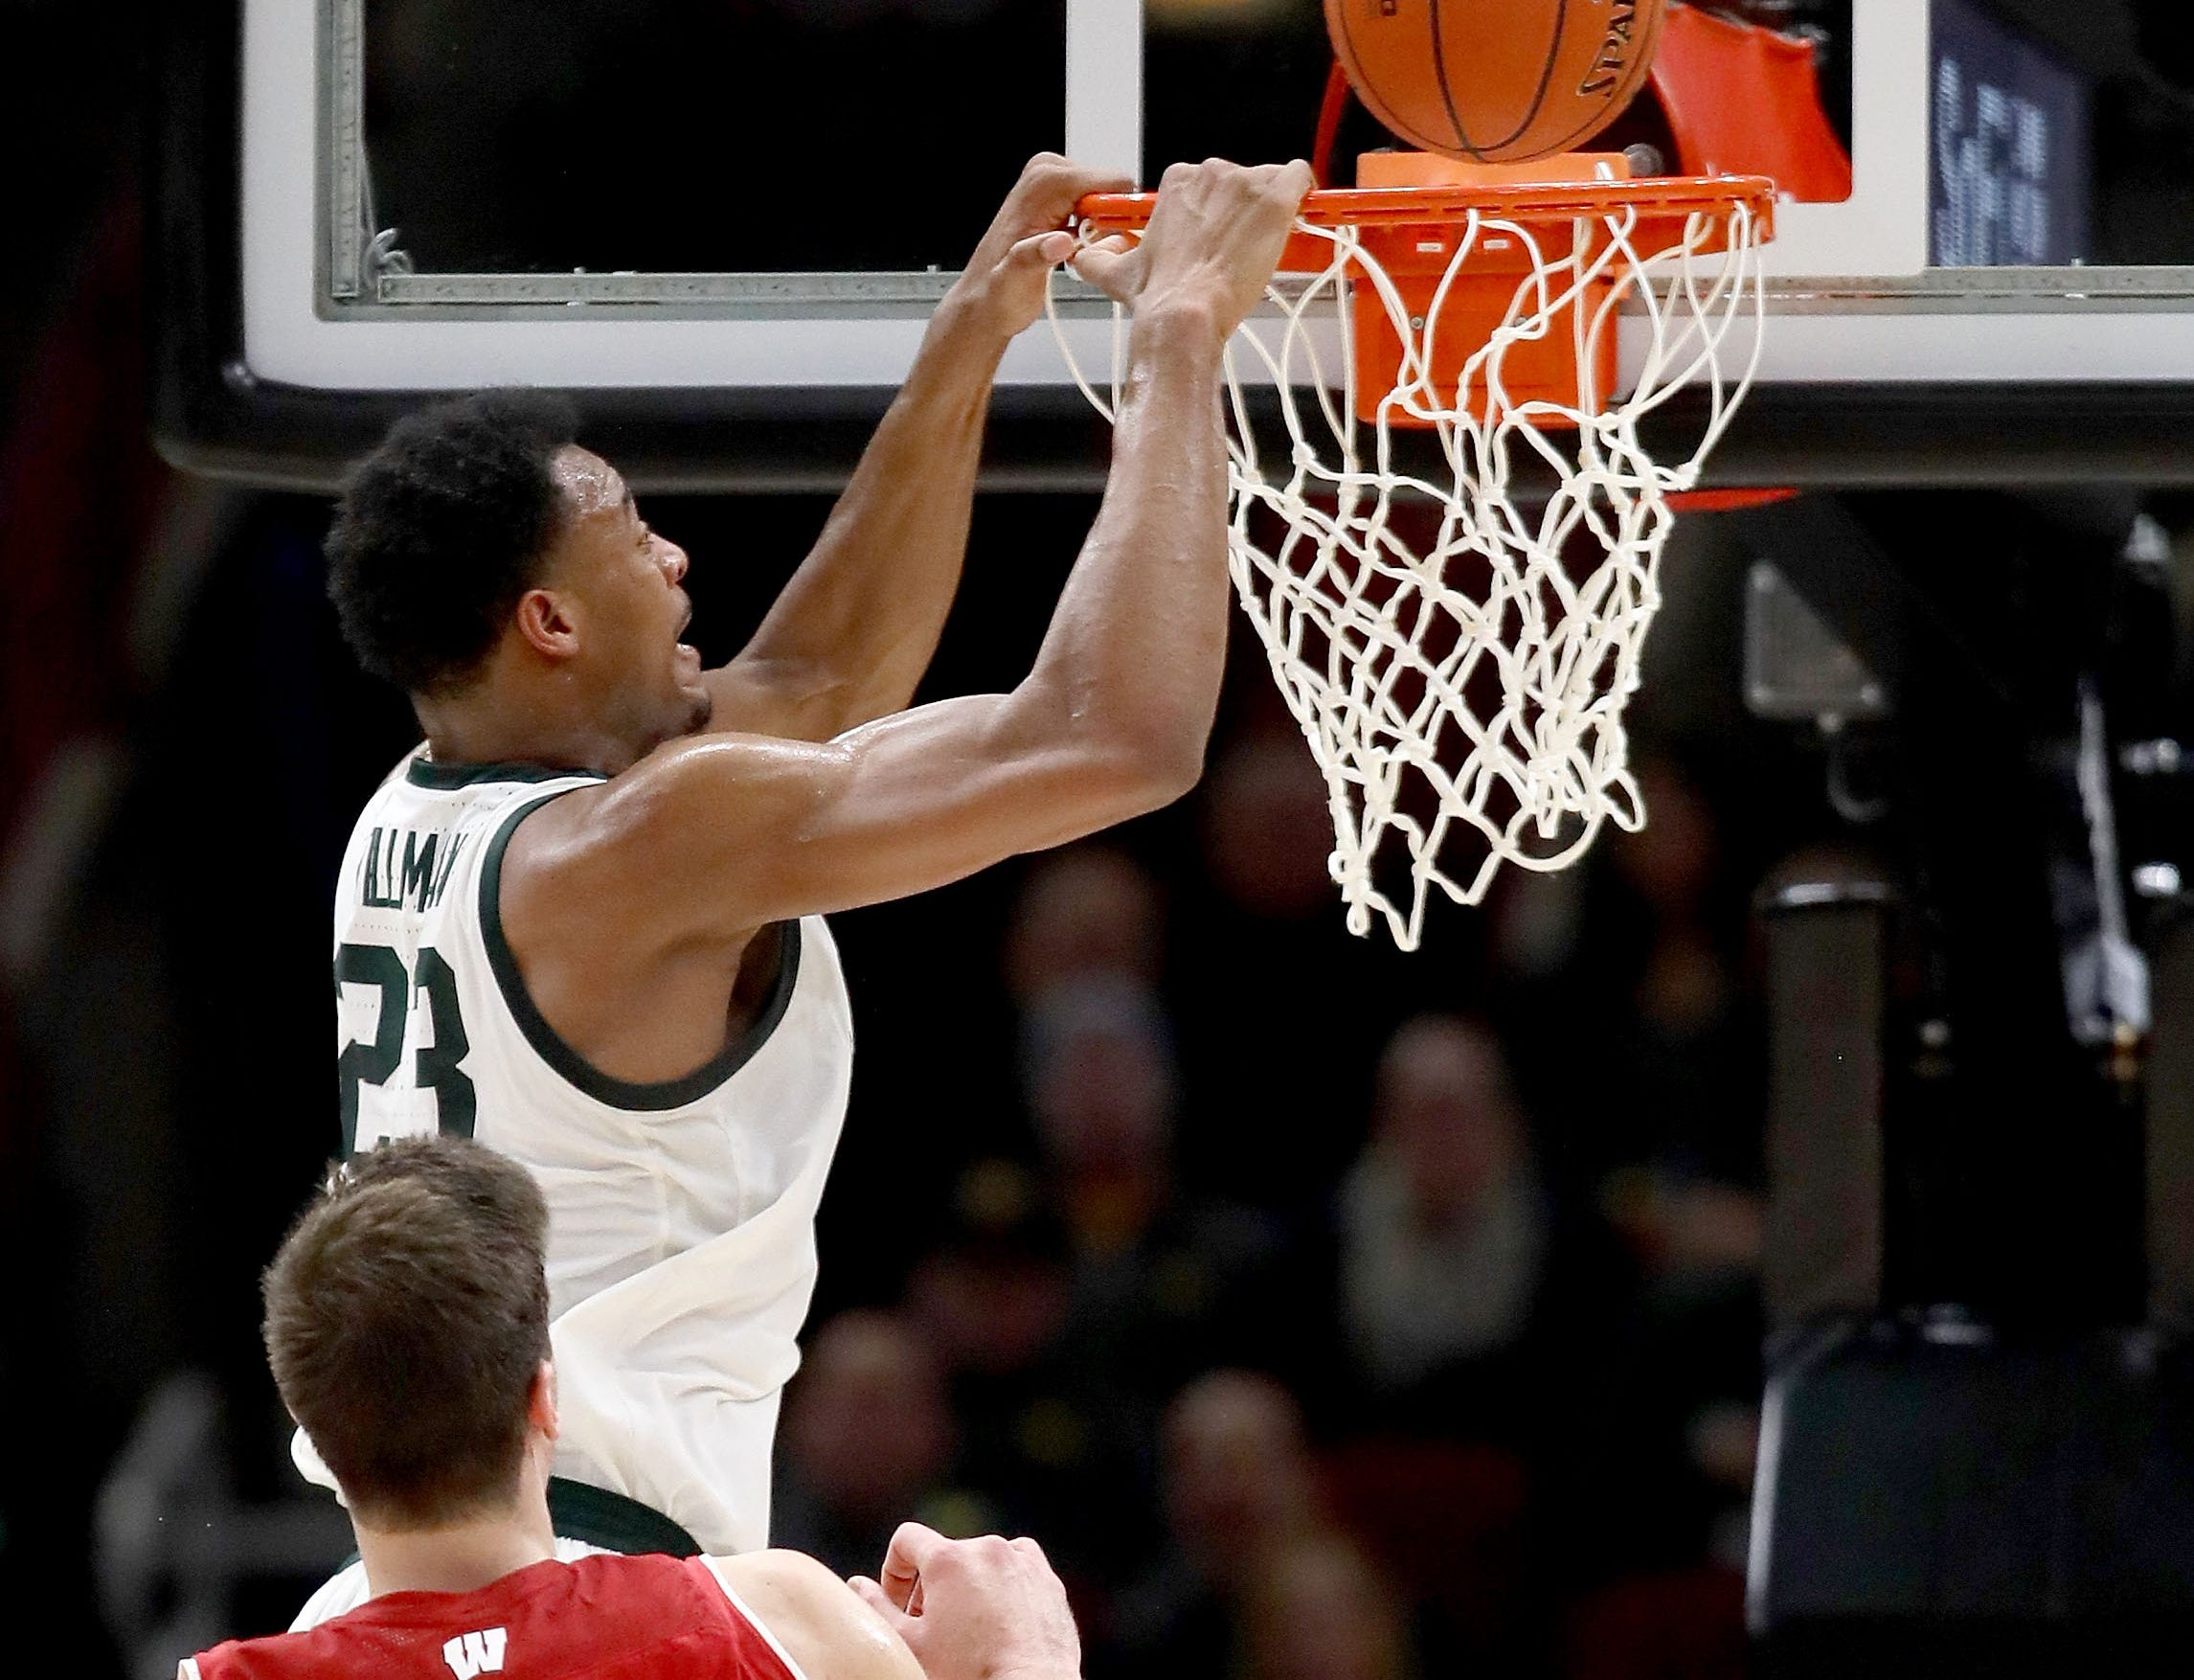 Xavier Tillman #23 of the Michigan State Spartans attempts a dunk past Ethan Happ #22 of the Wisconsin Badgers in the first half during the semifinals of the Big Ten Basketball Tournament at the United Center on March 16, 2019 in Chicago, Illinois.